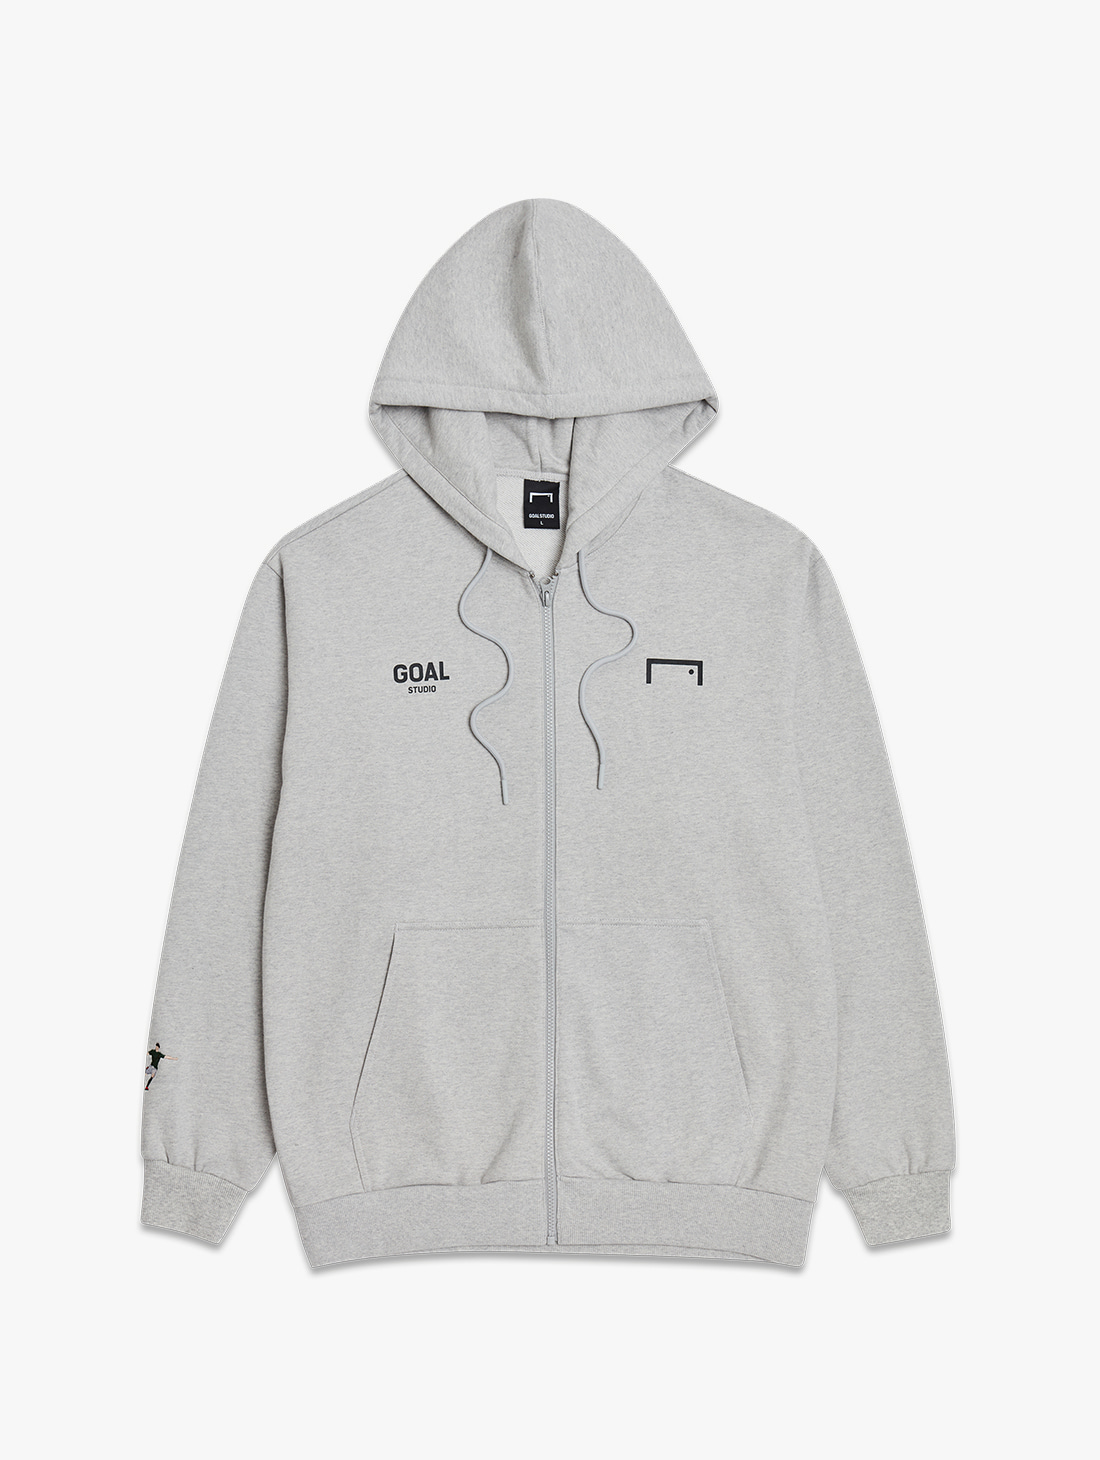 GOALSTUDIO SIGNATURE ZIP UP HOODIE (3 Colors)